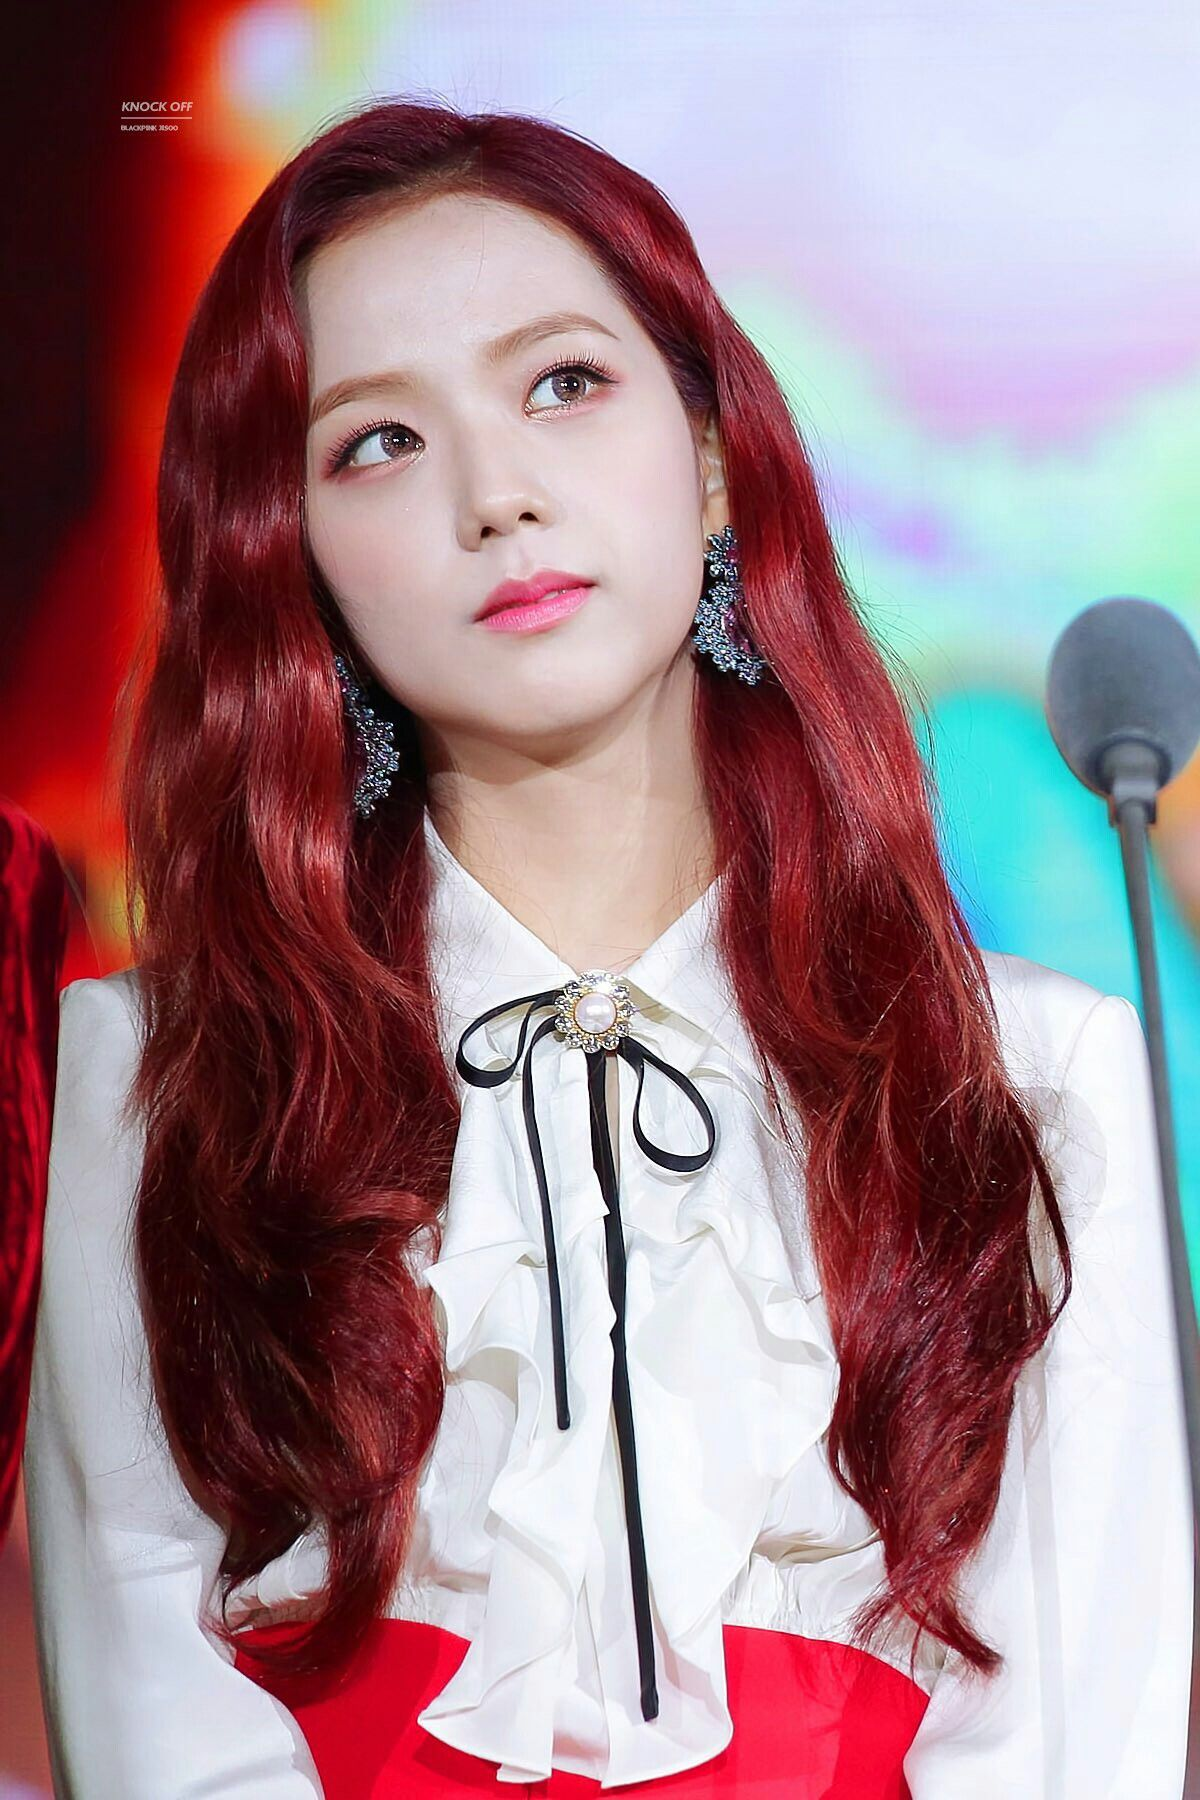 Bts Cute Wallpaper Iphone 16 Female K Pop Idols Who Slayed With Red Hair Koreaboo